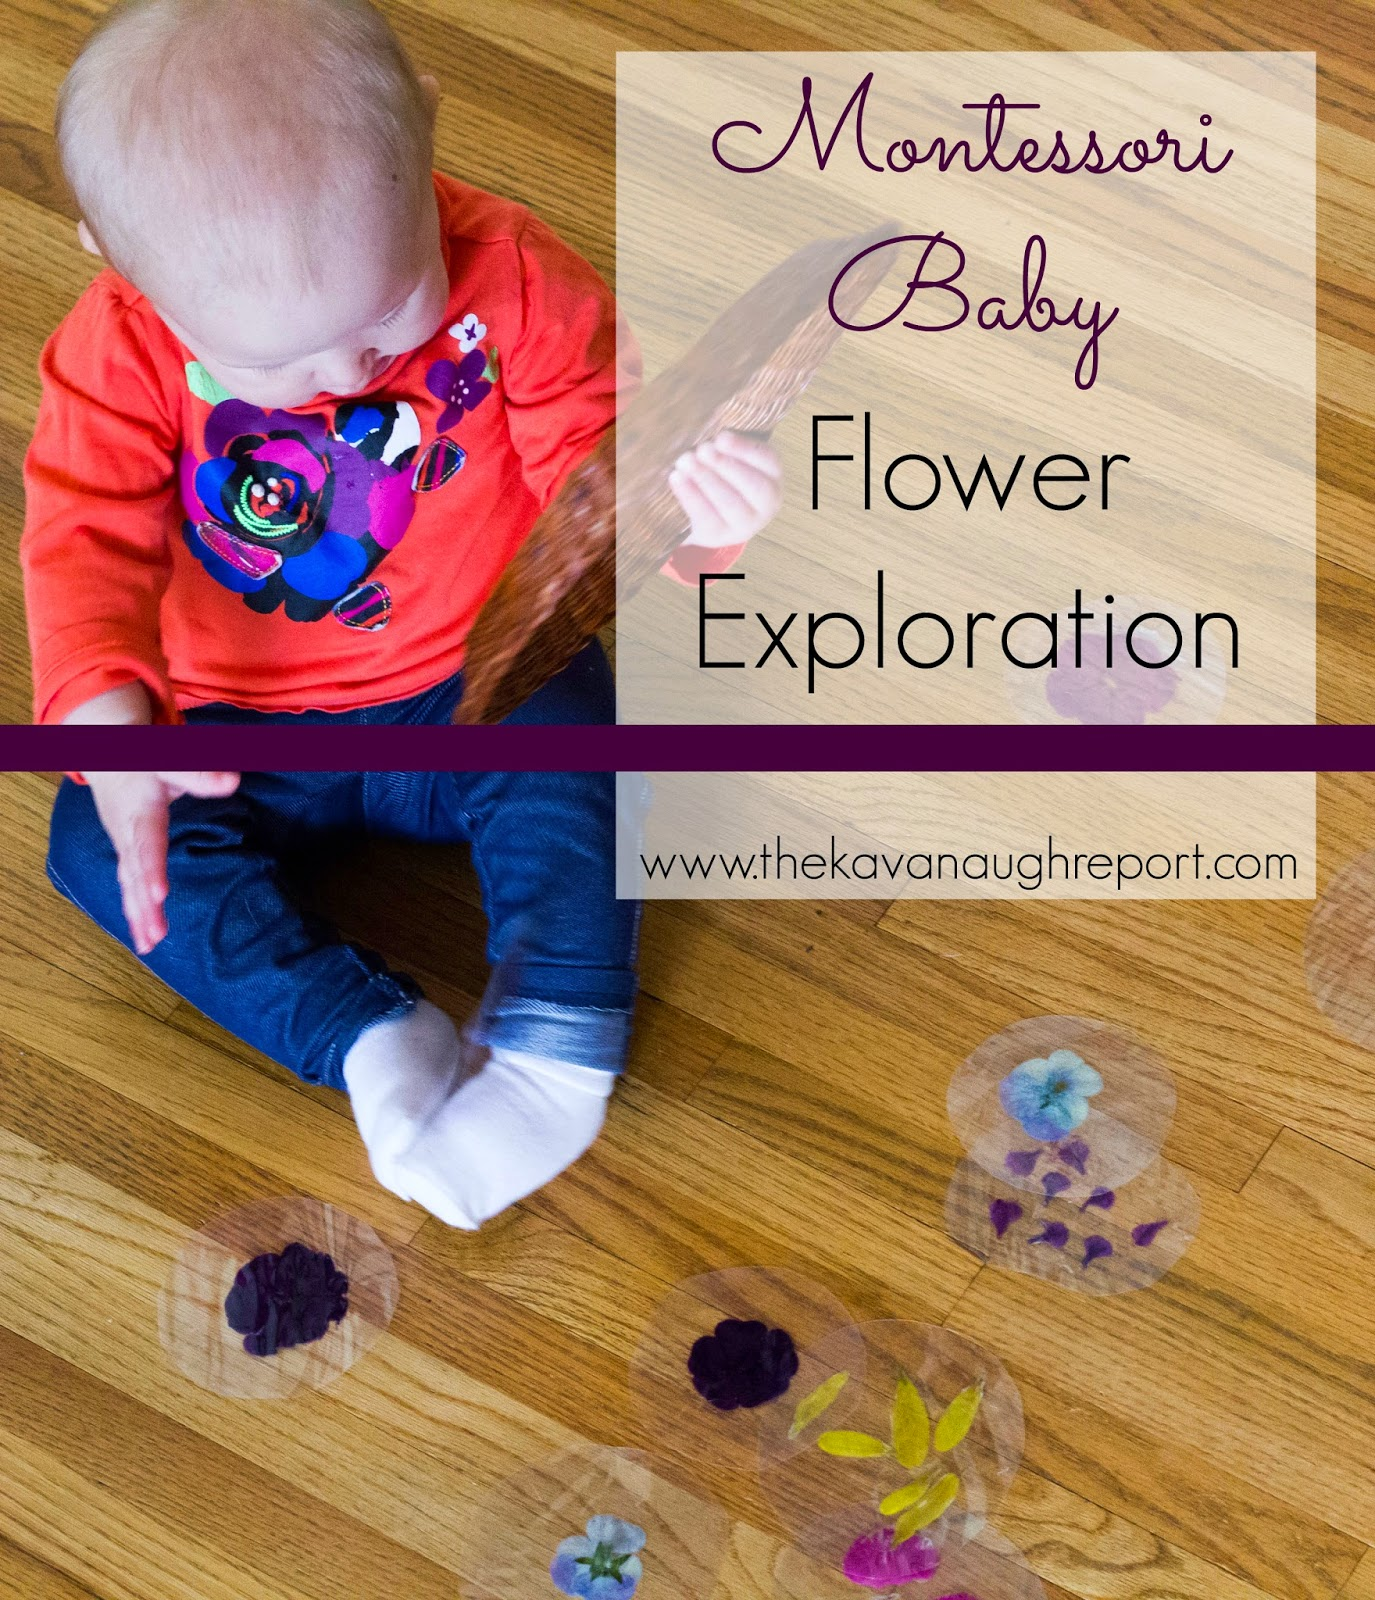 Let babies and toddlers explore flowers with this Montessori inspired idea. Laminated flowers are a great way to explore during the spring.